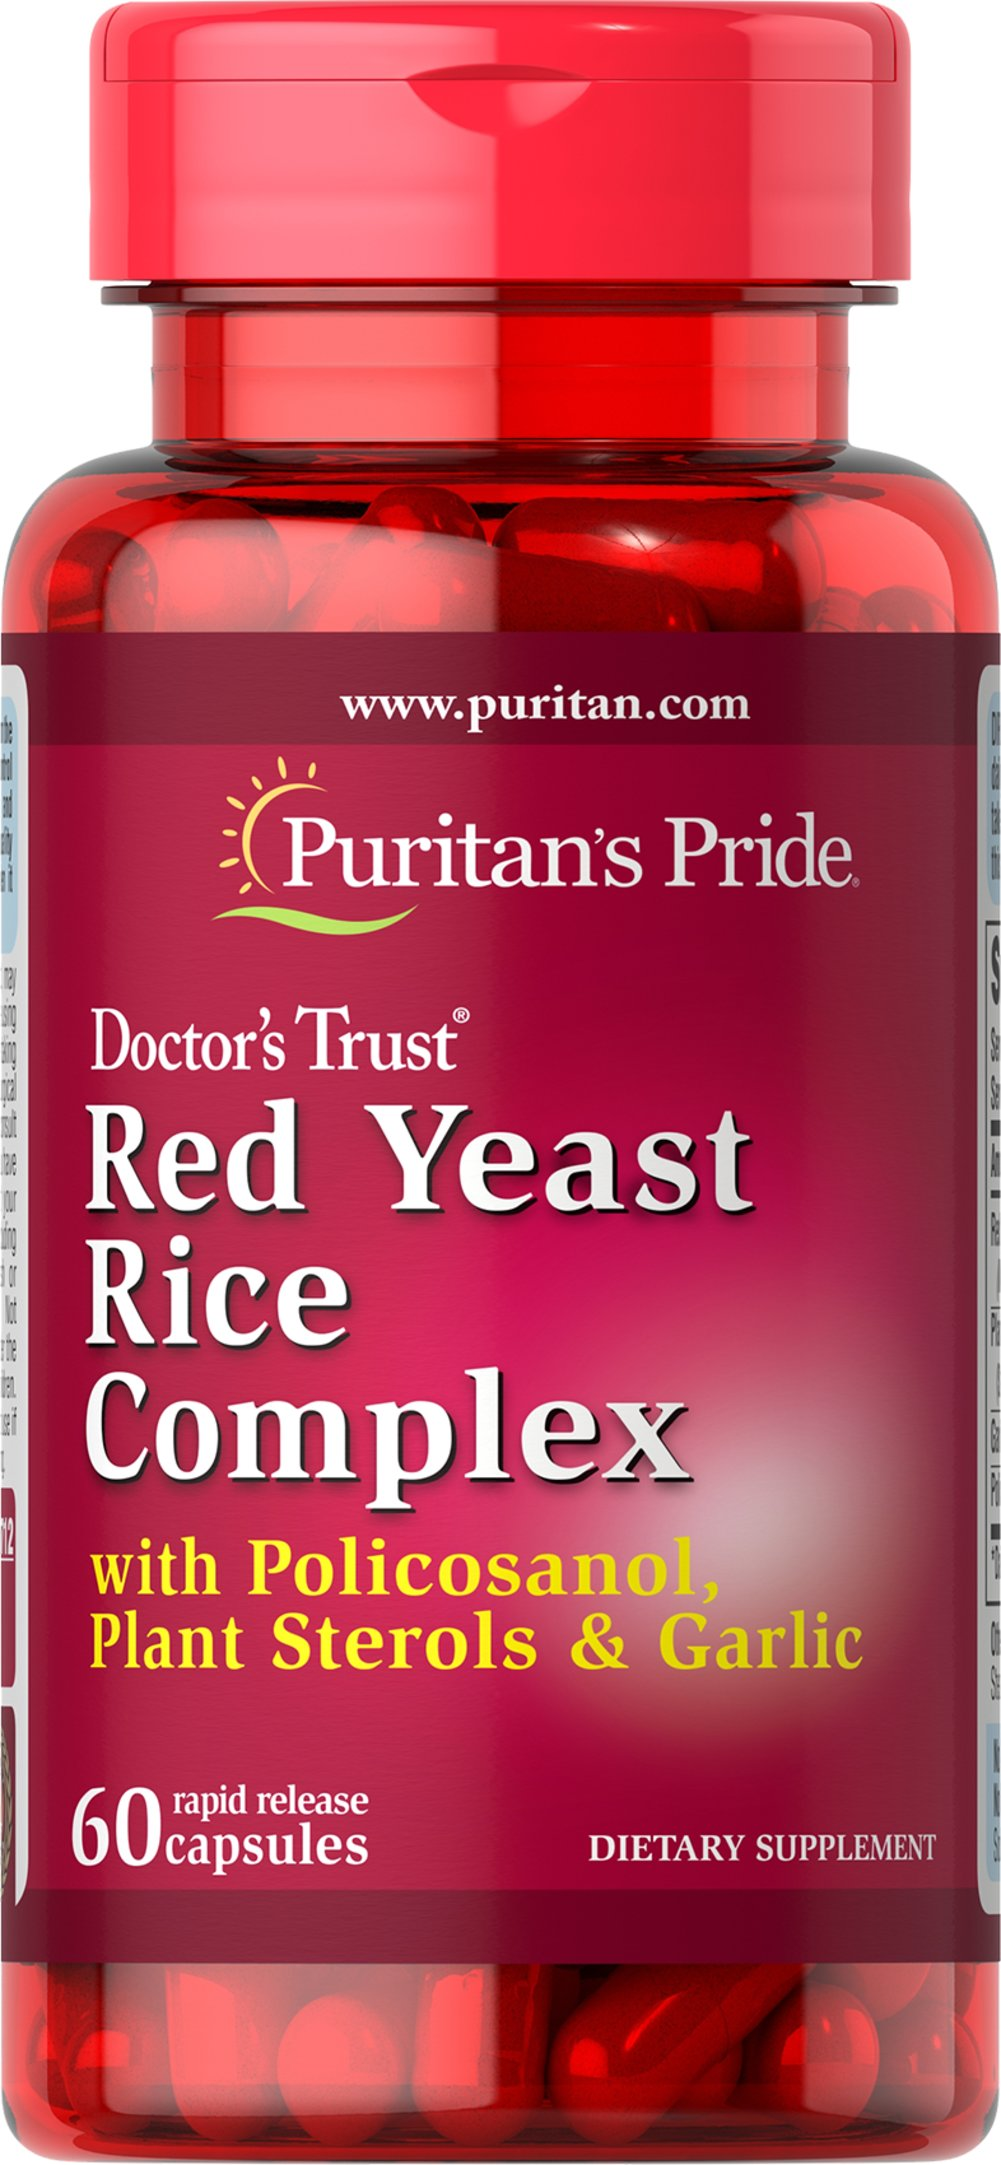 Red Yeast Rice Complex